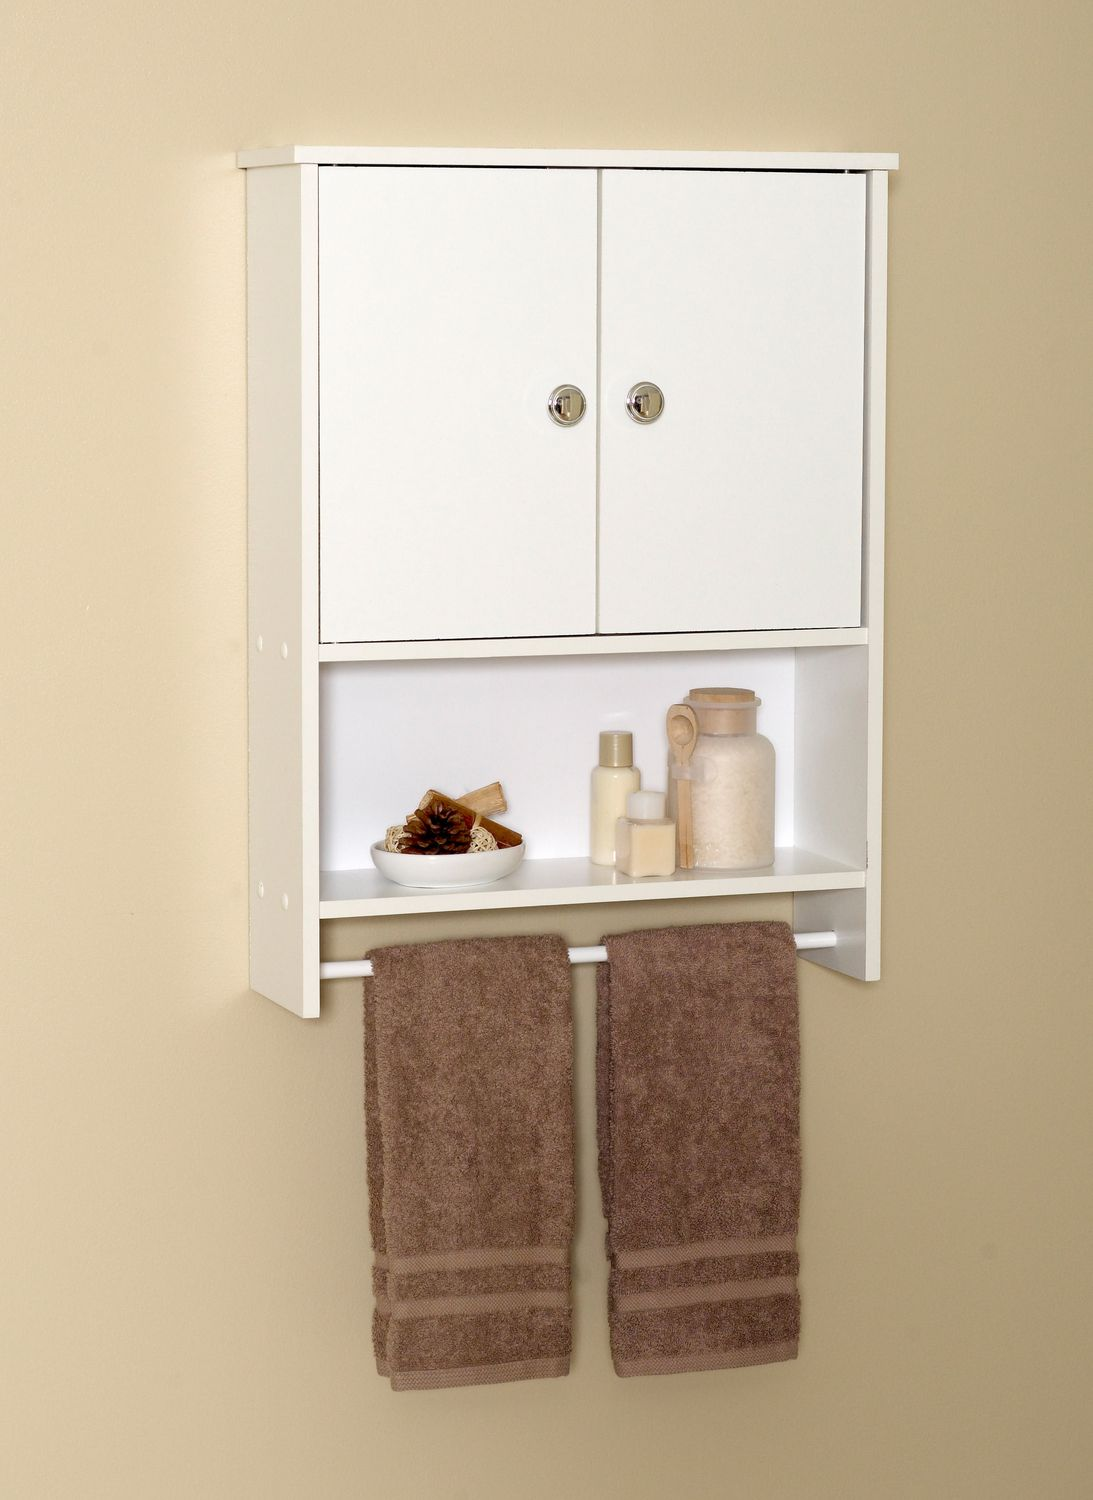 Wall cabinets for bathroom storage - Wall Cabinets For Bathroom Storage 45